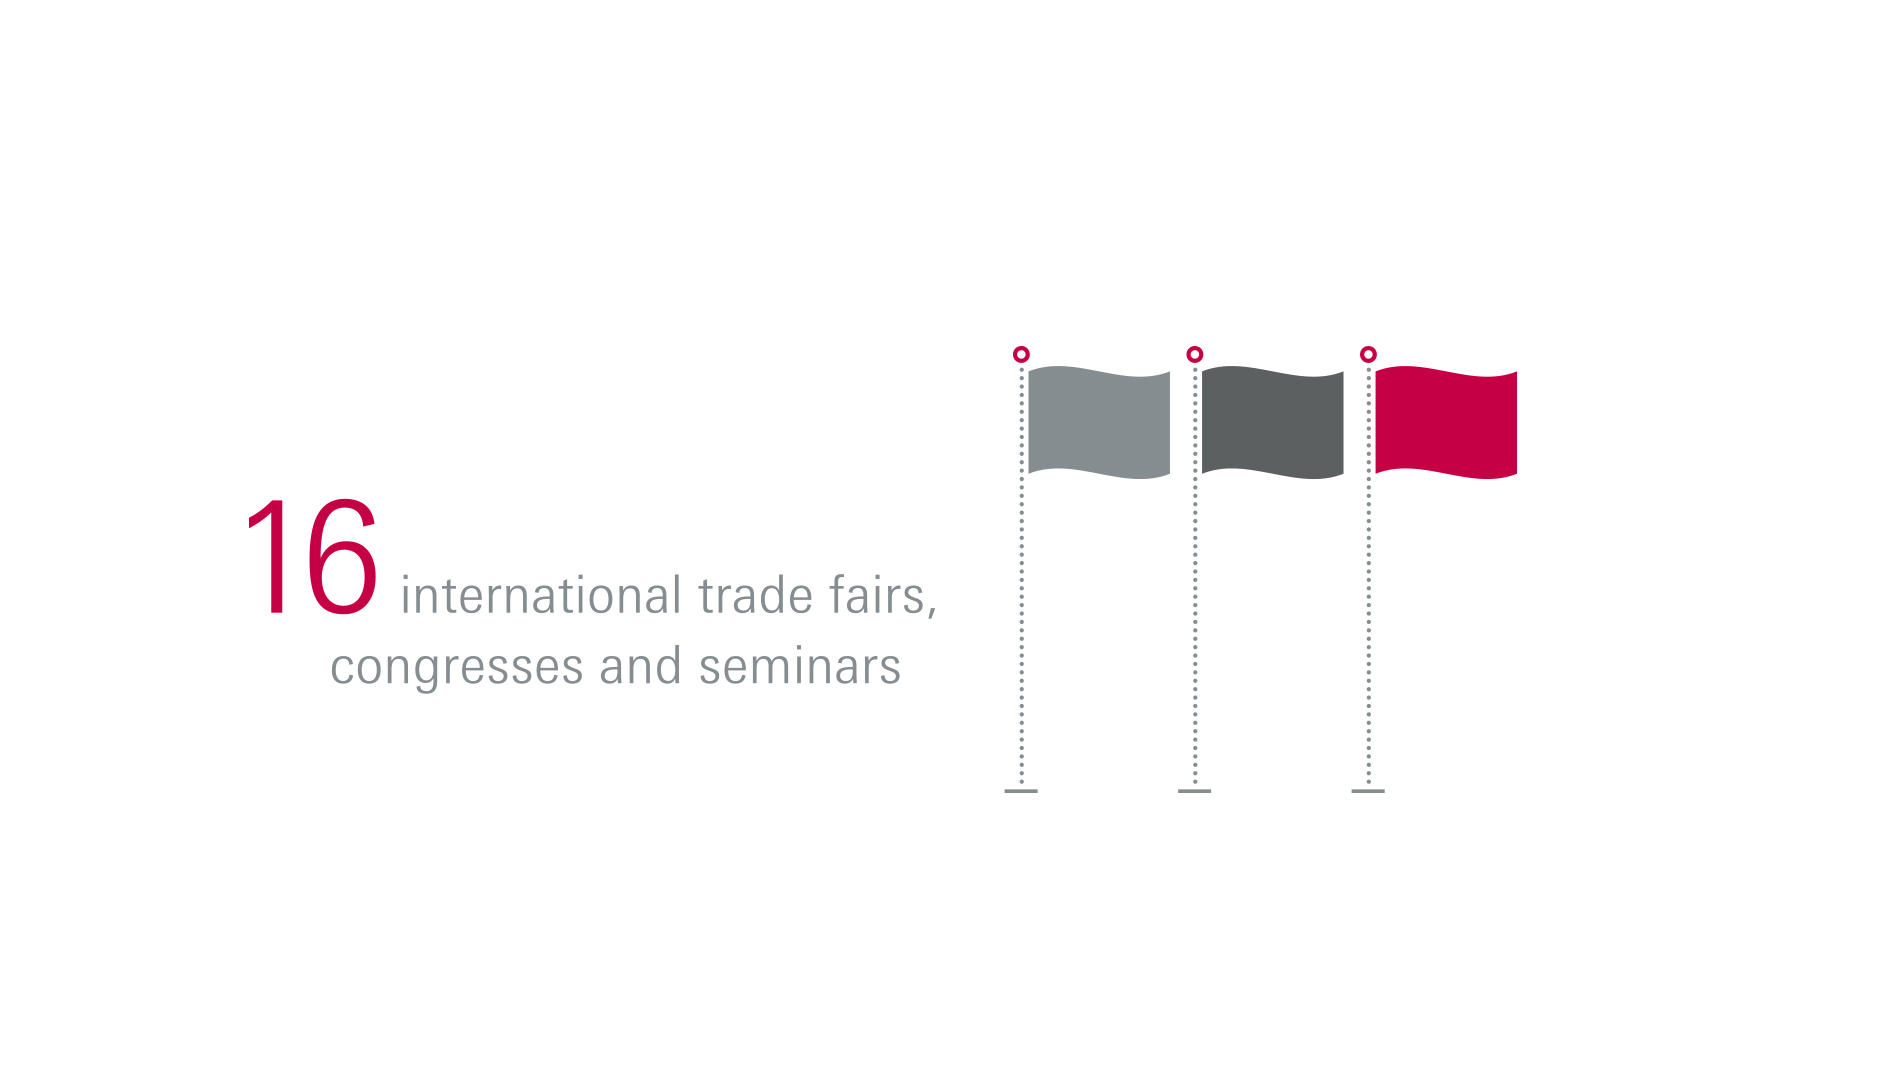 16 international trade fairs, congresses and seminars